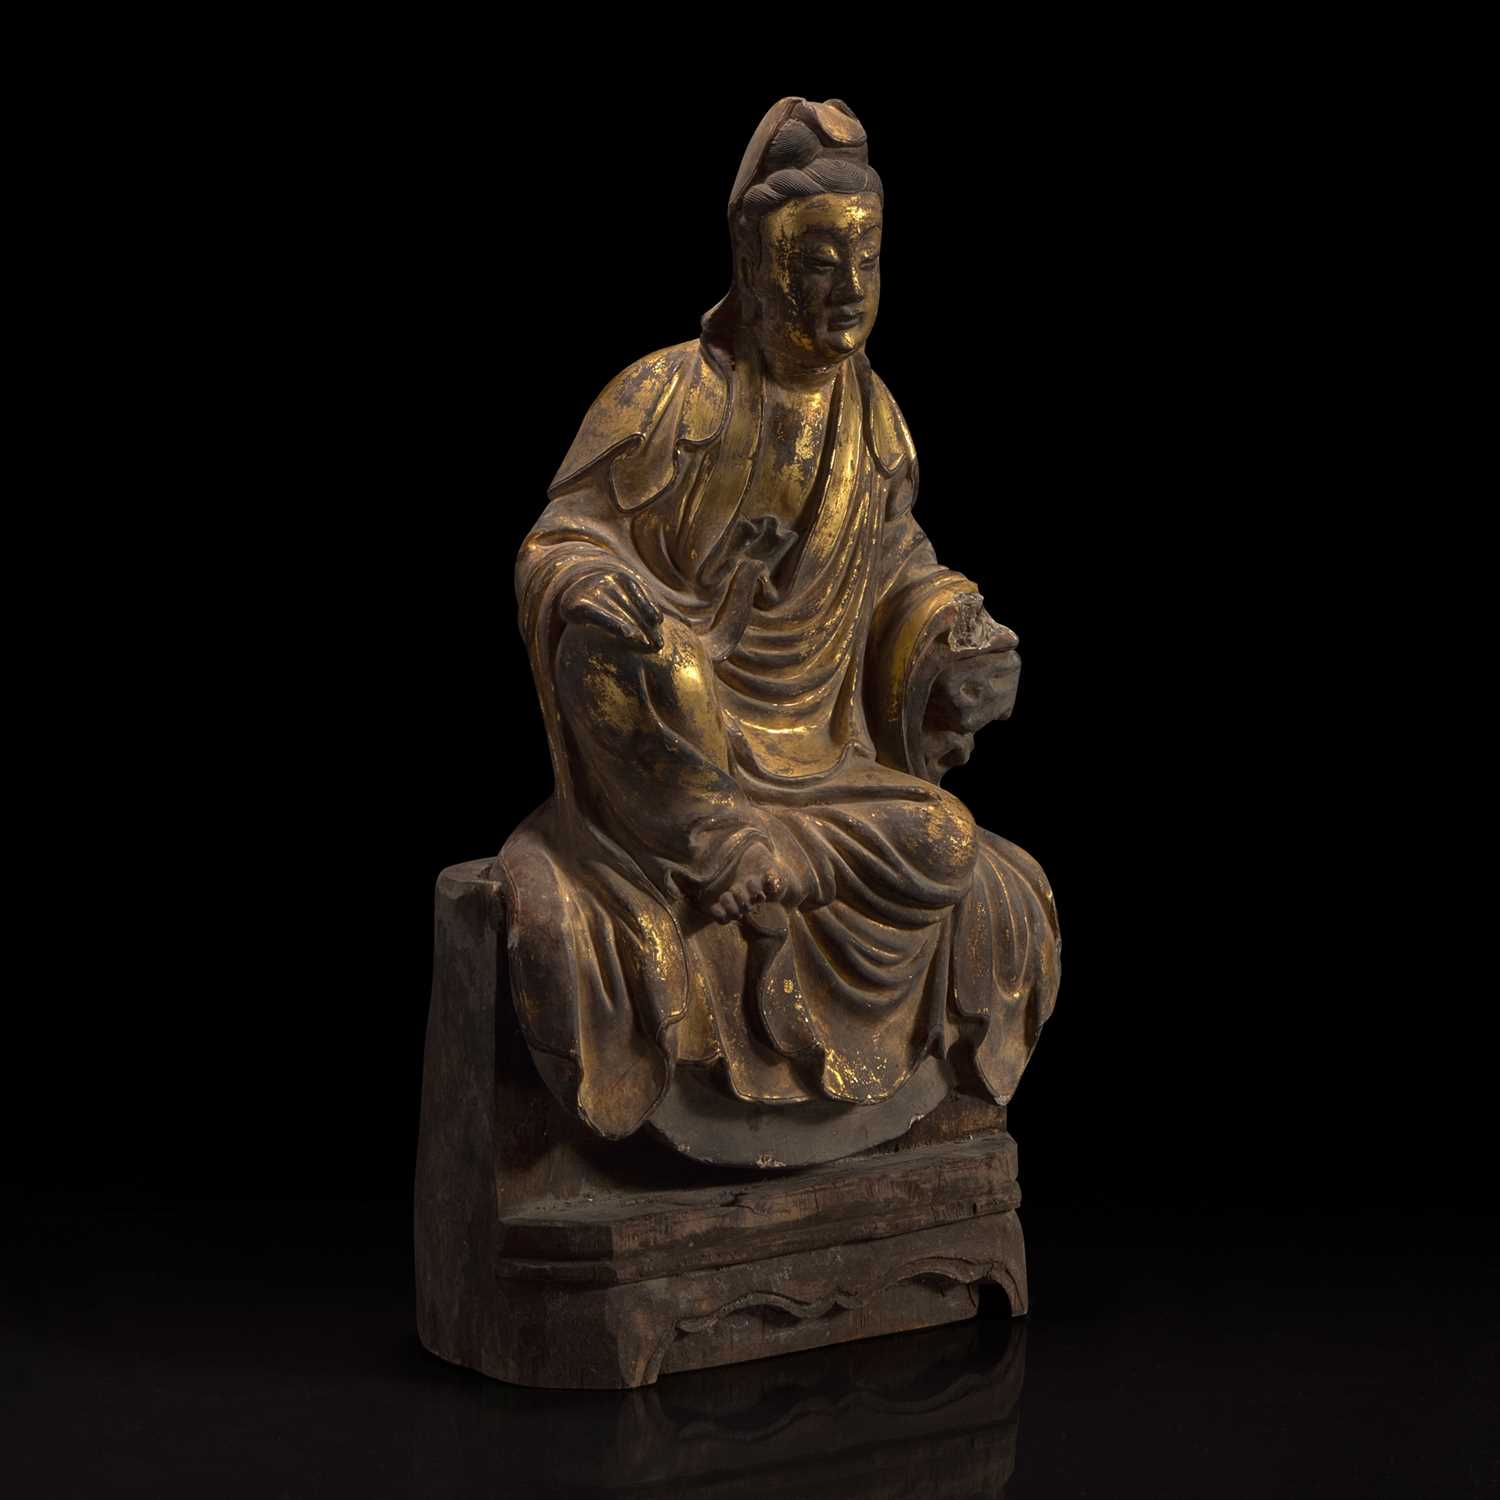 Lot 53 - A Chinese gilt-lacquered stucco figurine of Guanyin 泥塑鎏金观音